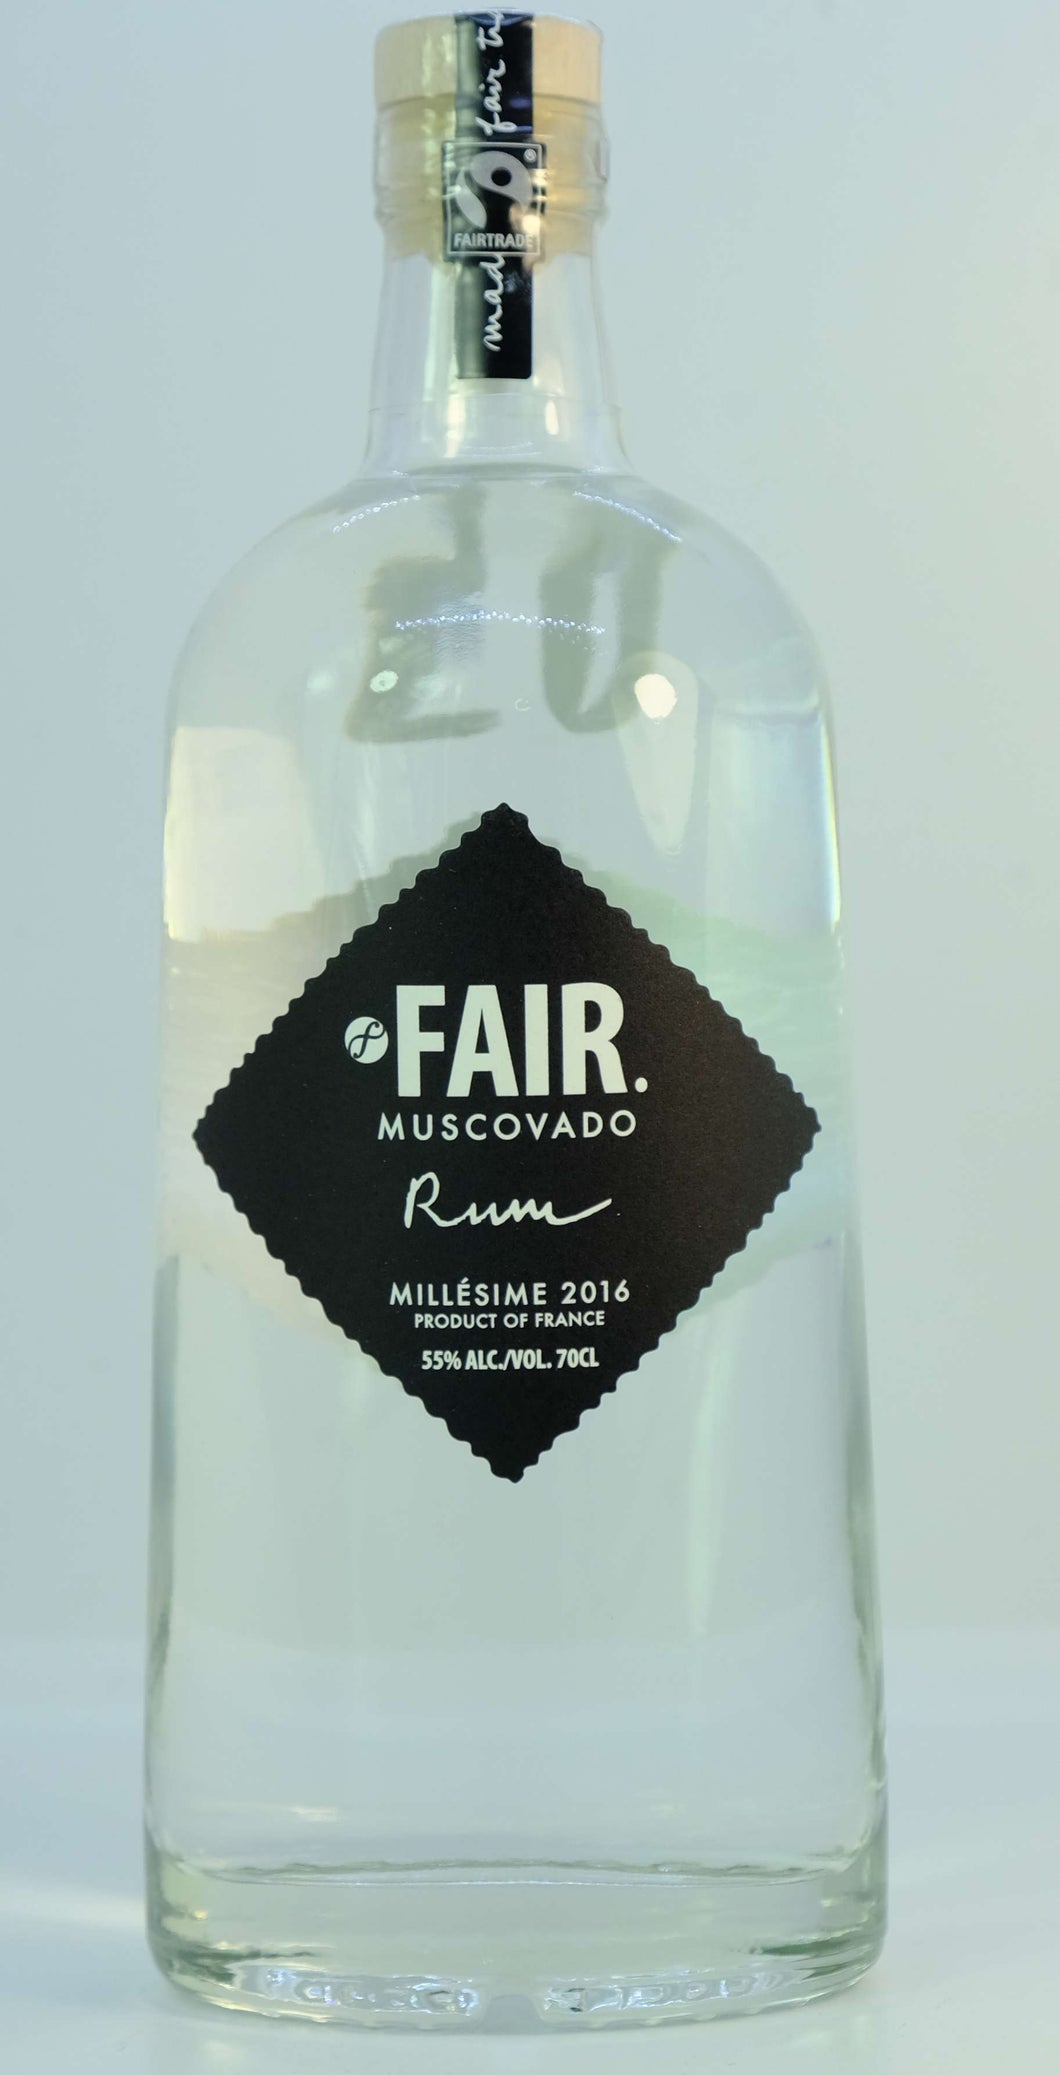 FAIR Rum Belize muscovado